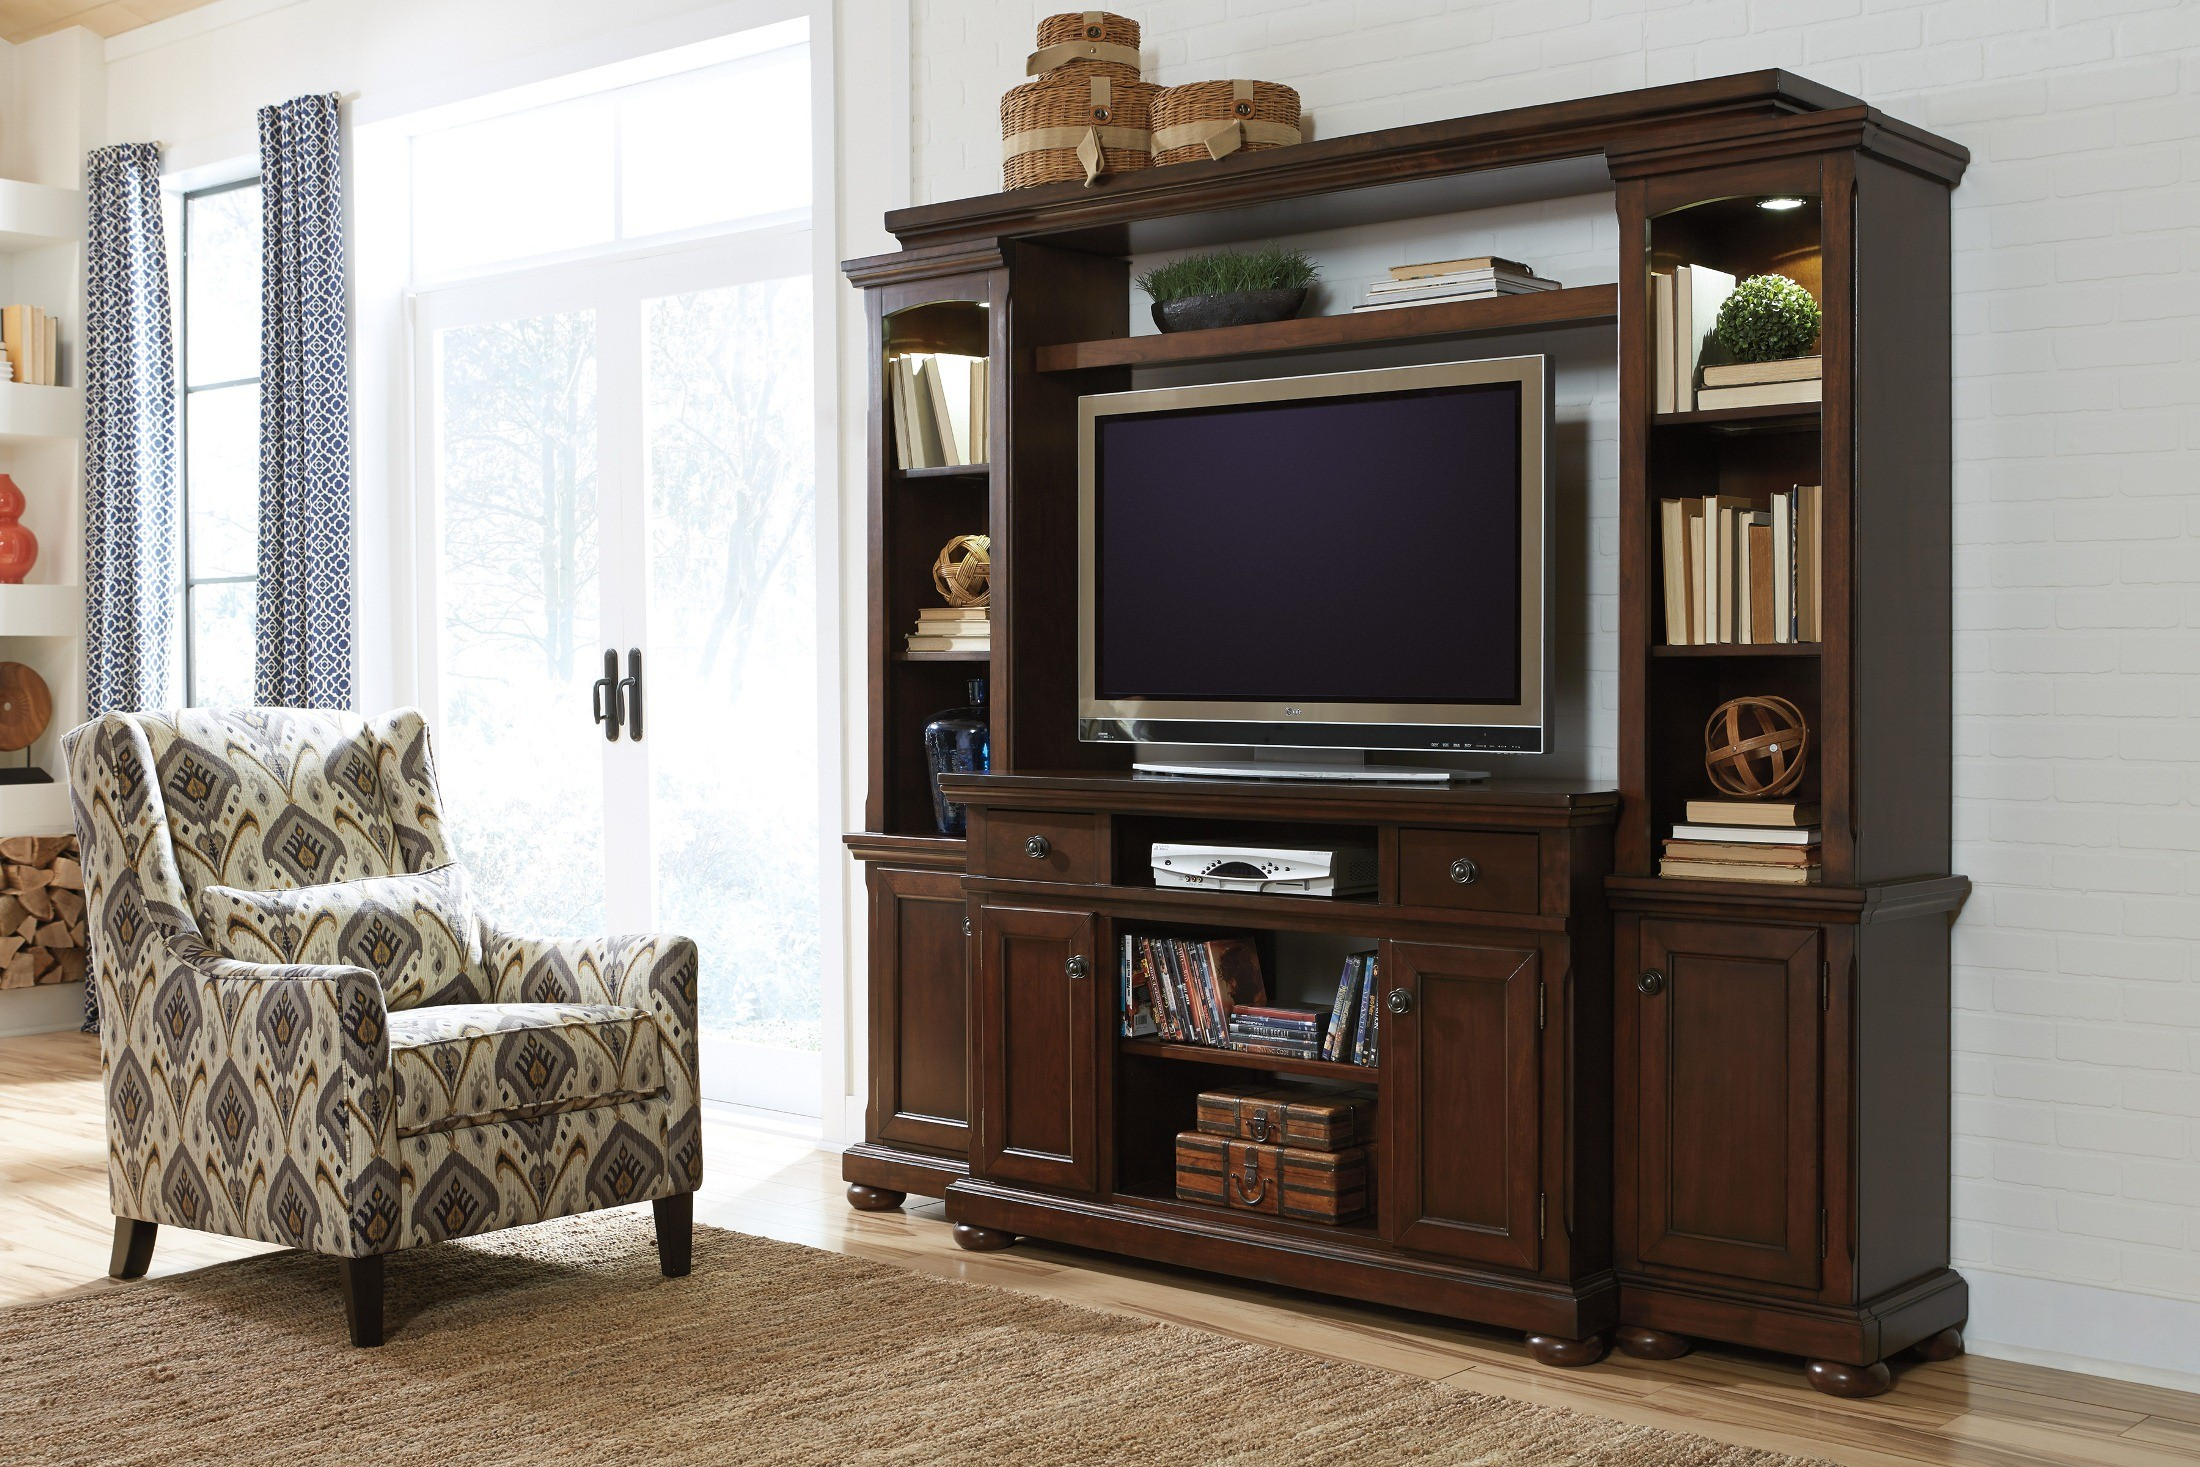 Porter Bedroom Set Porter Entertainment Wall Unit From Ashley W697 120 23 24